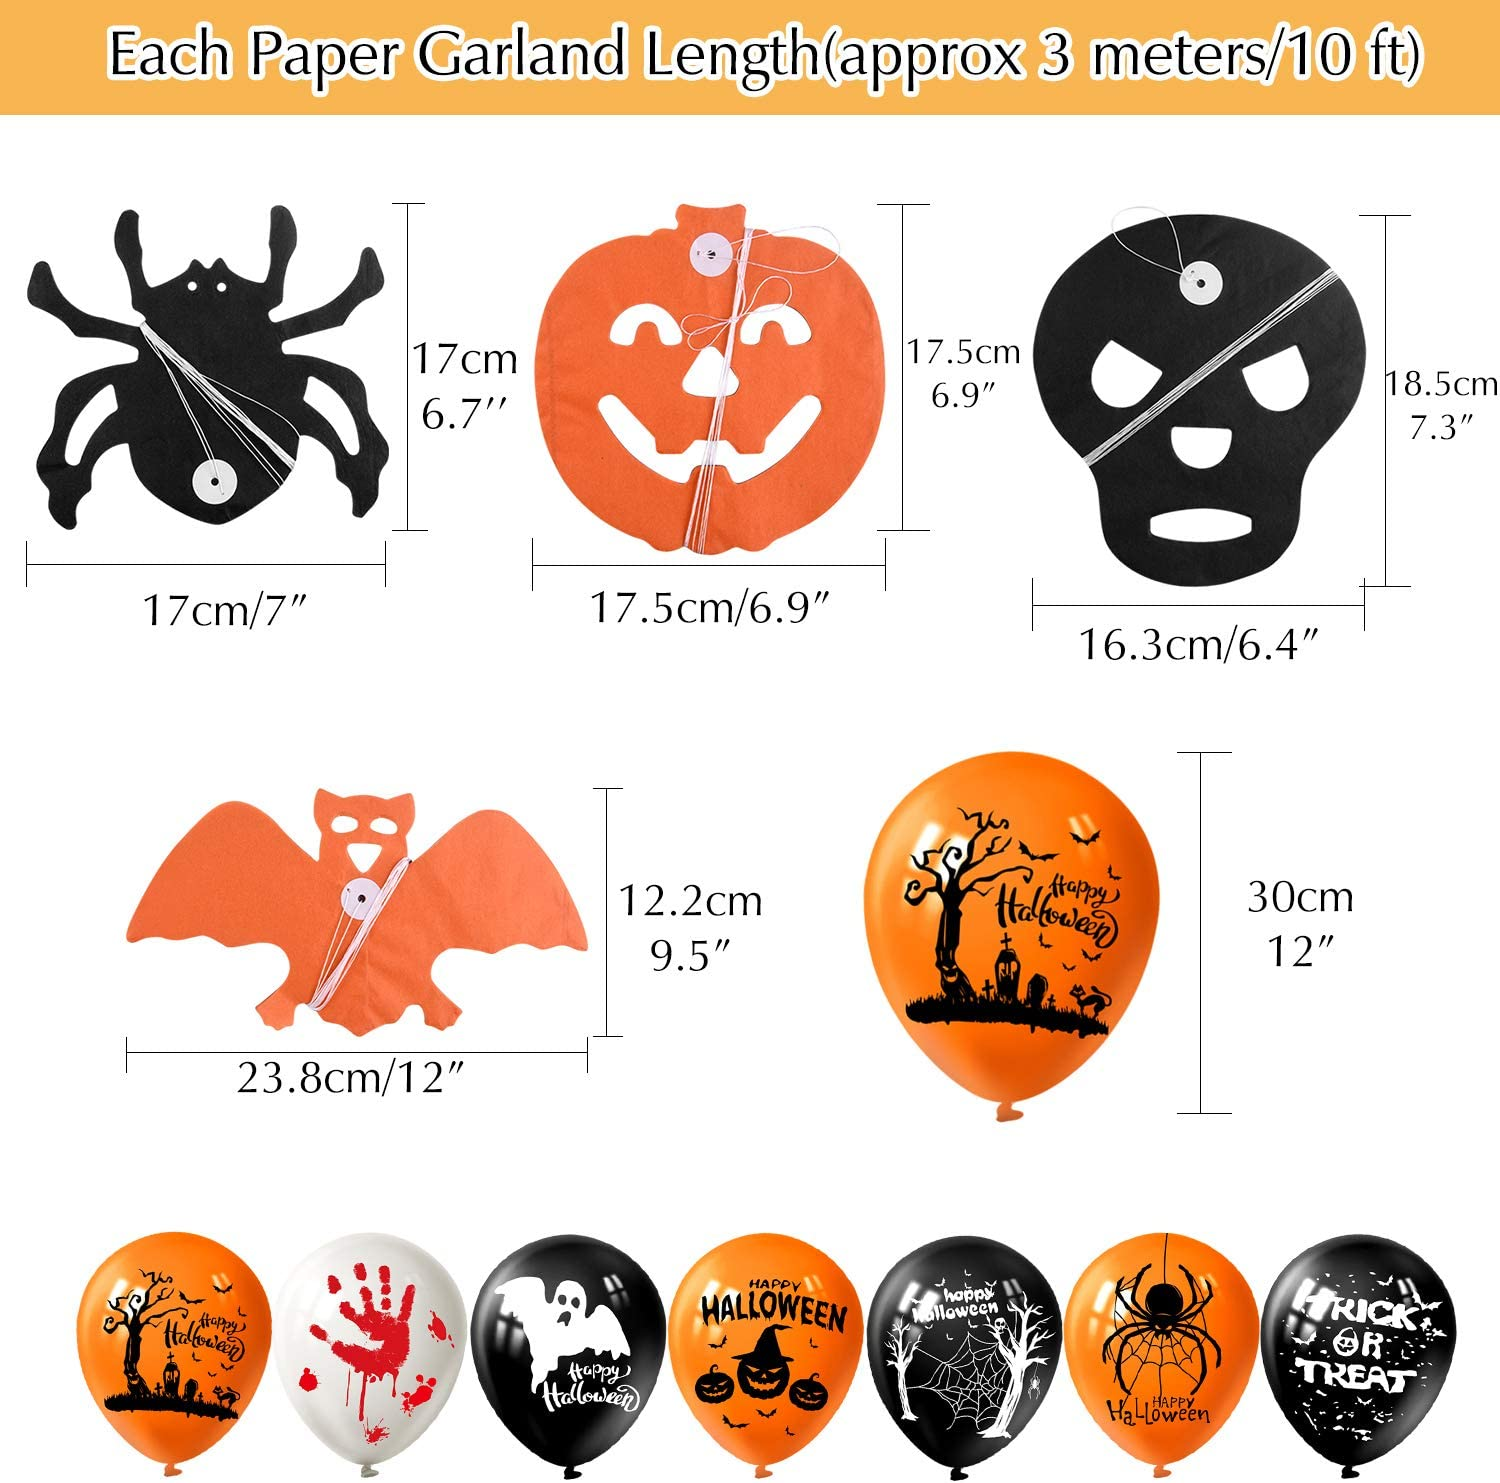 MIAHART Set di Decorazioni per Feste di Halloween Happy Halloween Banner con 5 Pezzi Spider Bat Zucca Ghost Foil Balloon 4 Pack Ghirlanda di Halloween e 18 Pezzi Balloon in Lattice